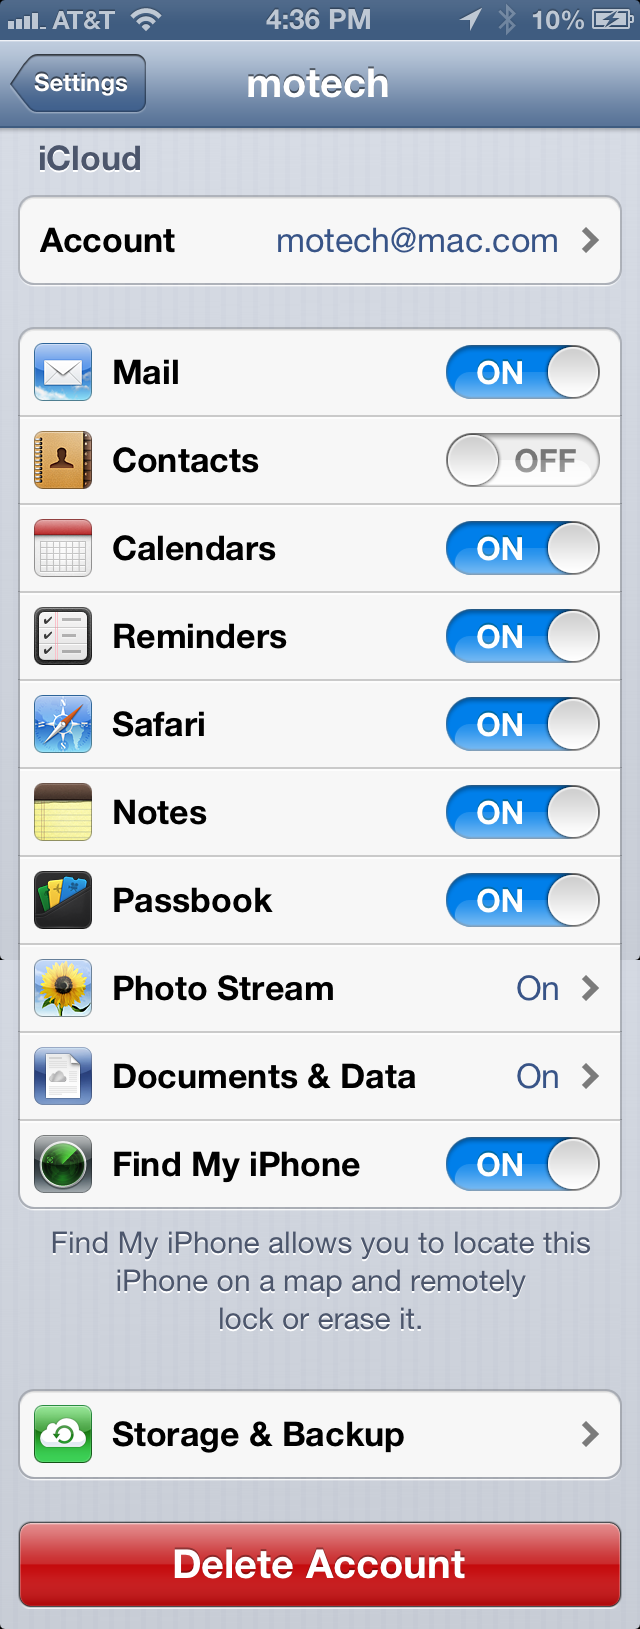 How do i backup my iphone photos